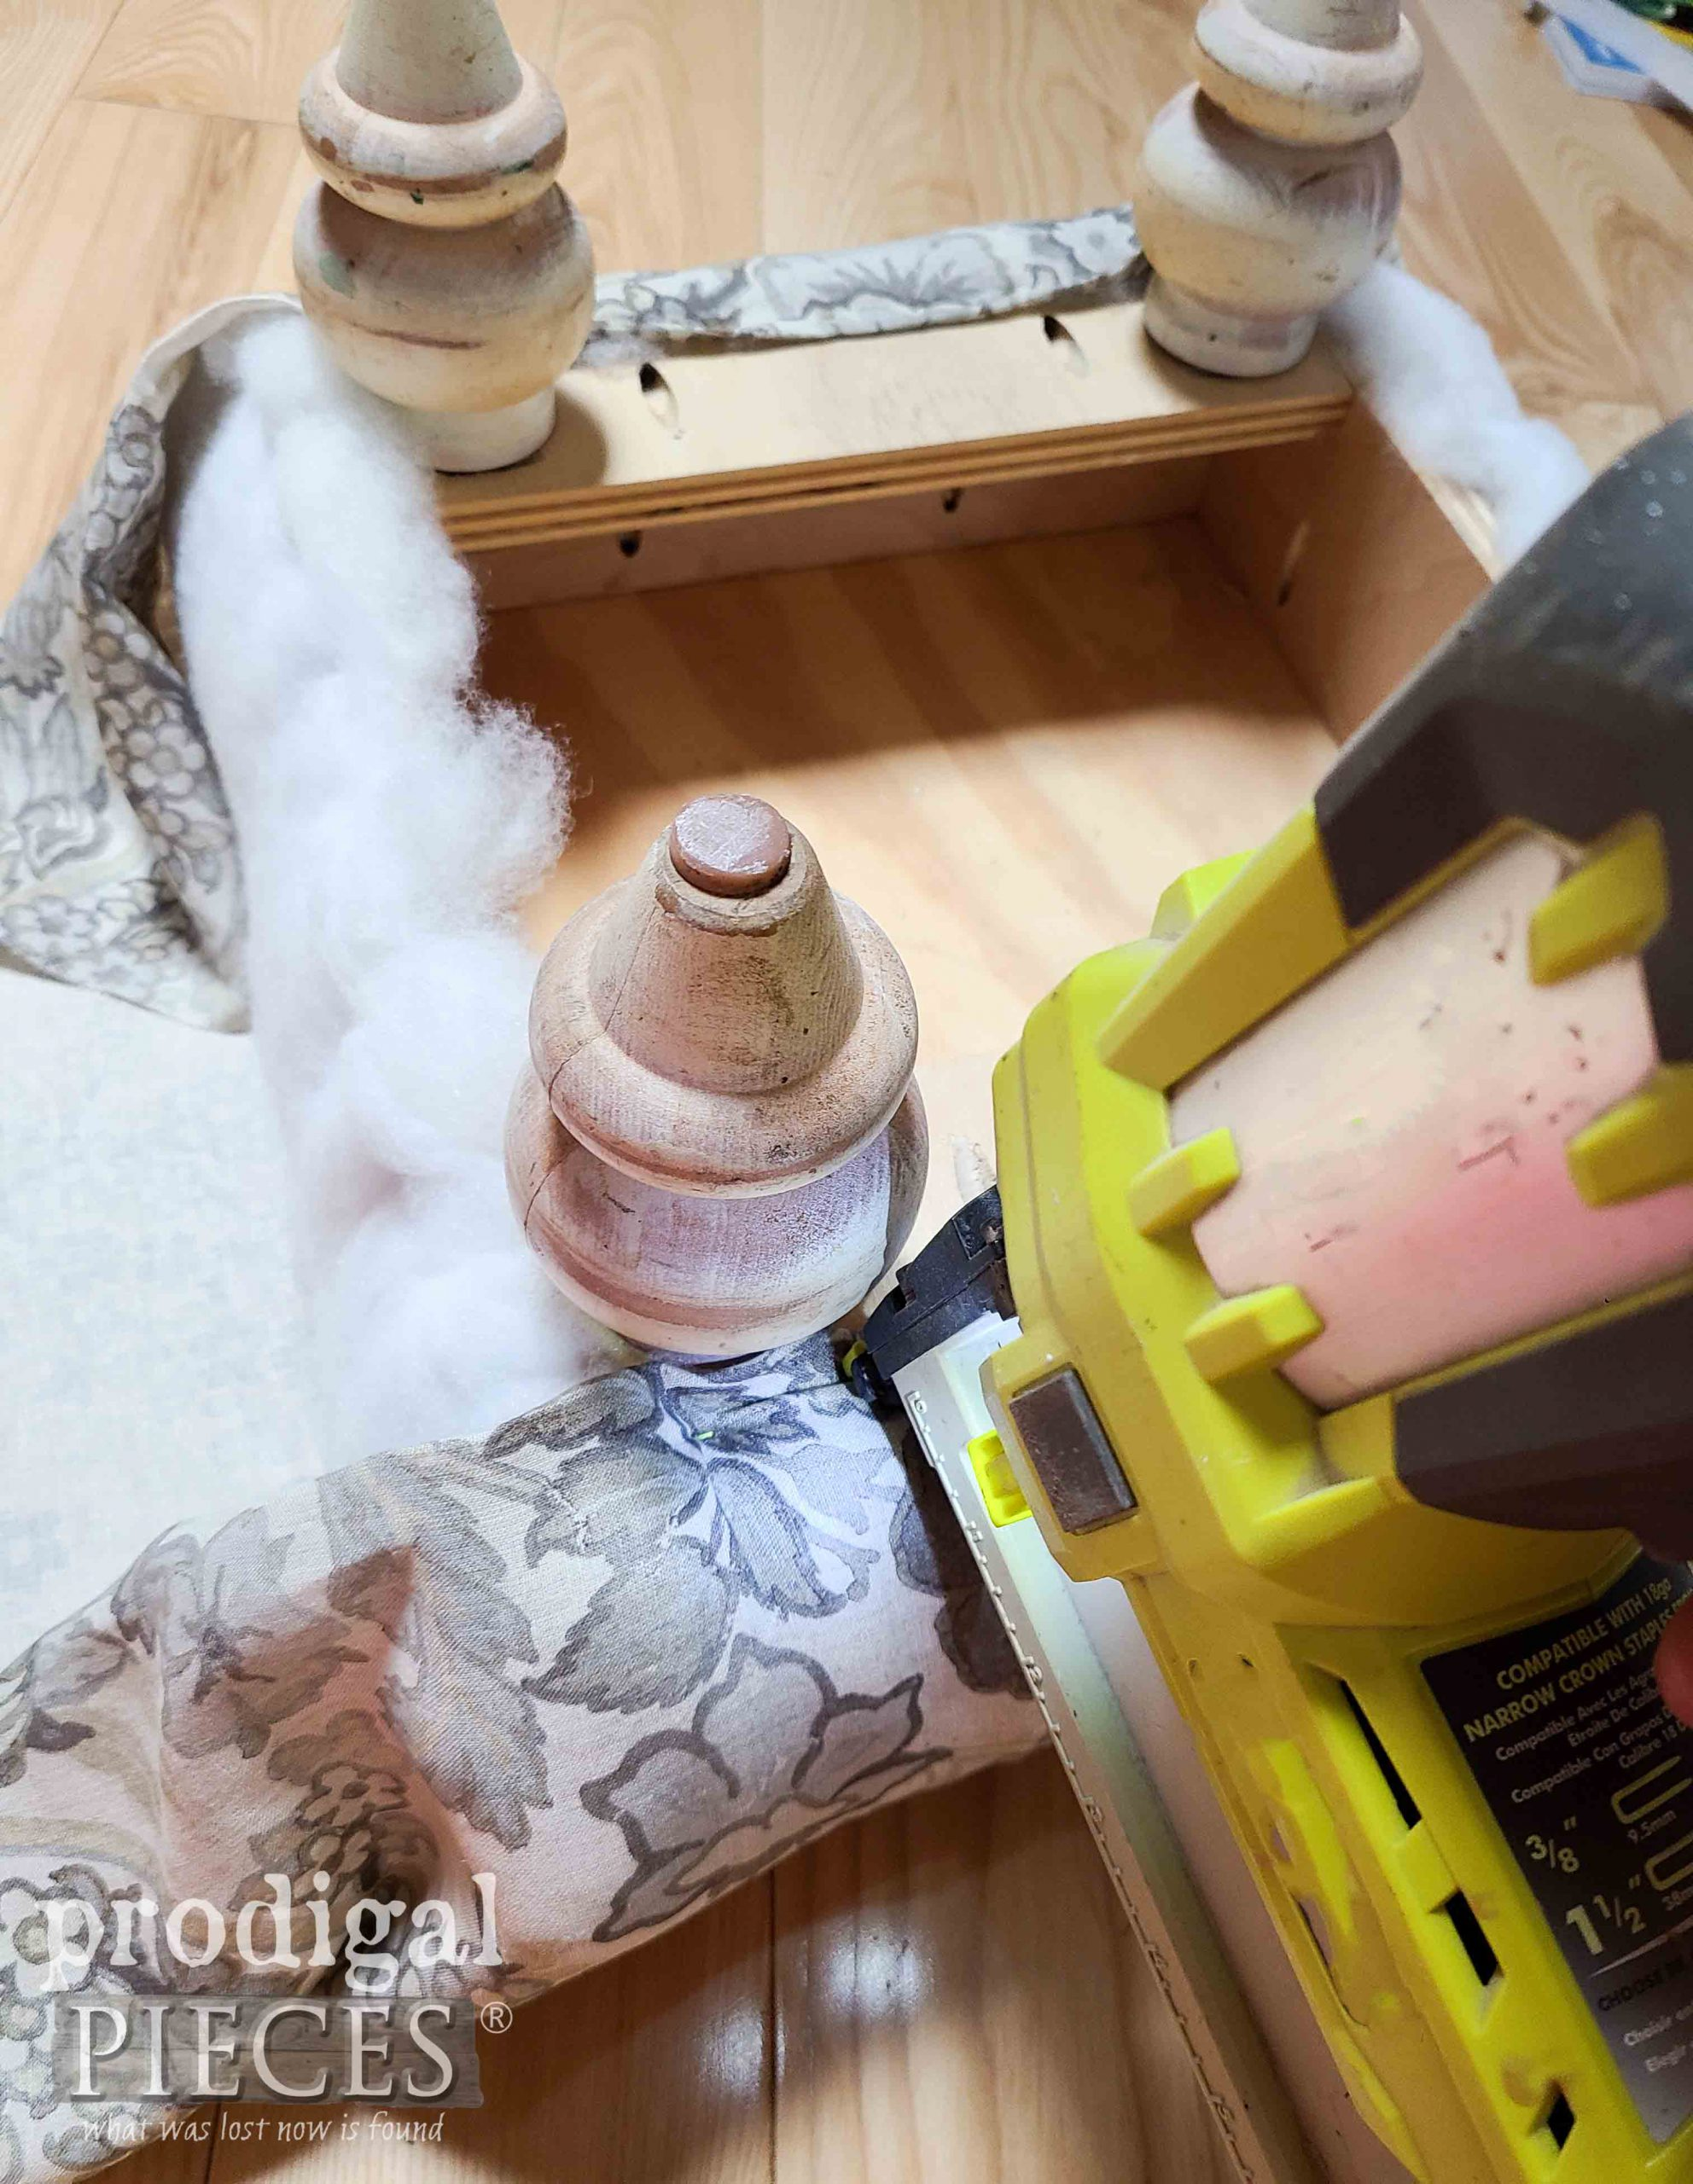 Stapling Upholstery to Upcycled Ottoman | prodigalpieces.com #prodigalpieces